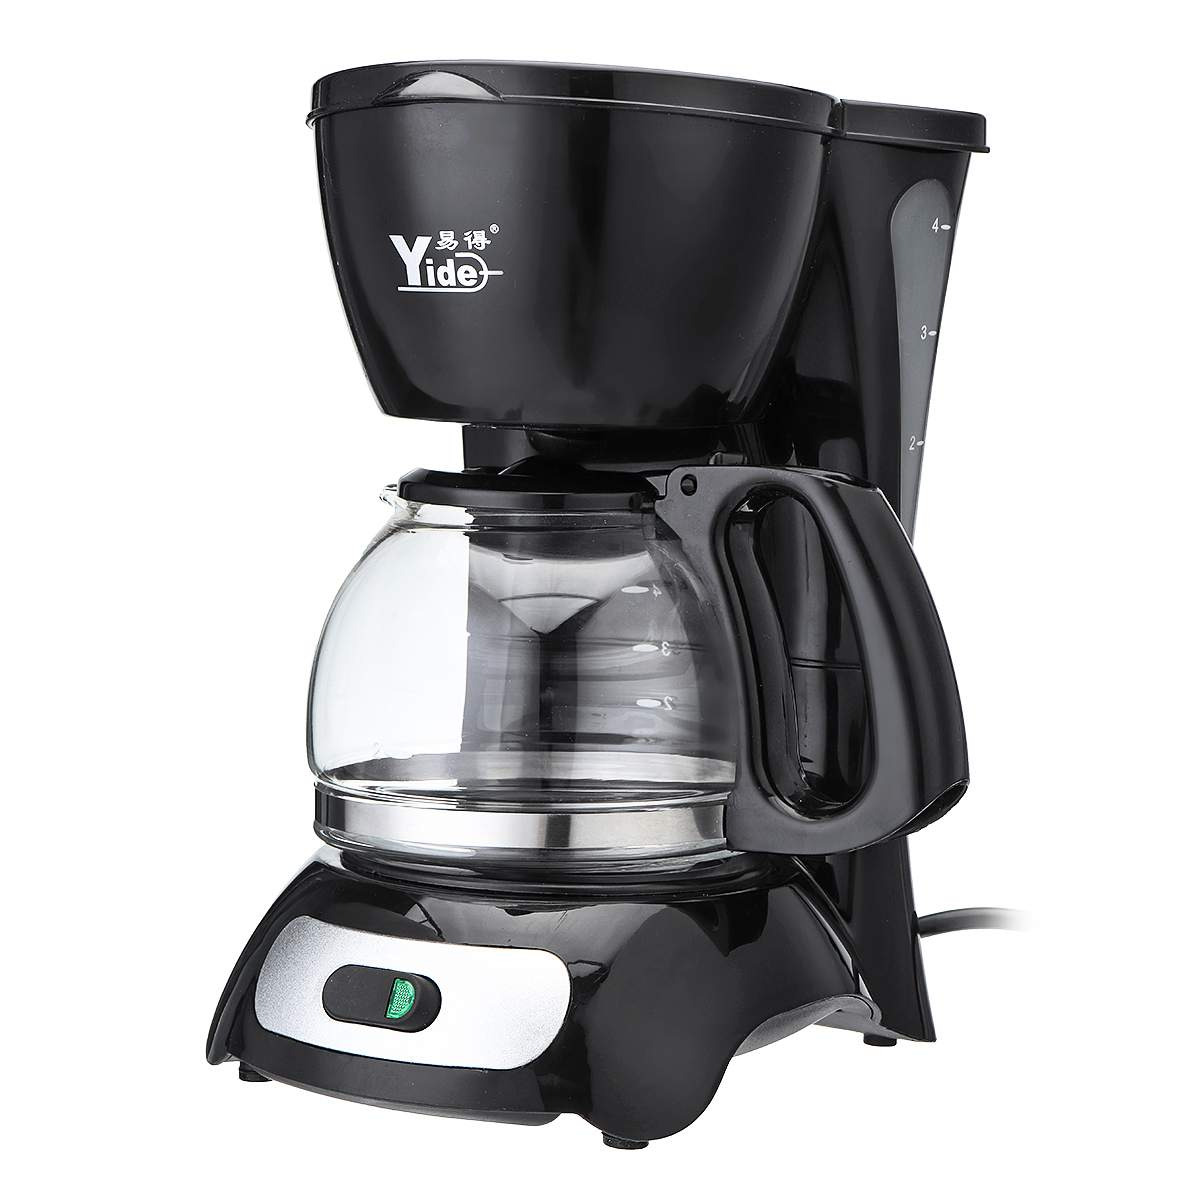 220V 650W 4-Cups Electric Coffee Maker Automatic Insulation Pot Small Drip Commercial American Coffee Machine Kitchen 4-6 People